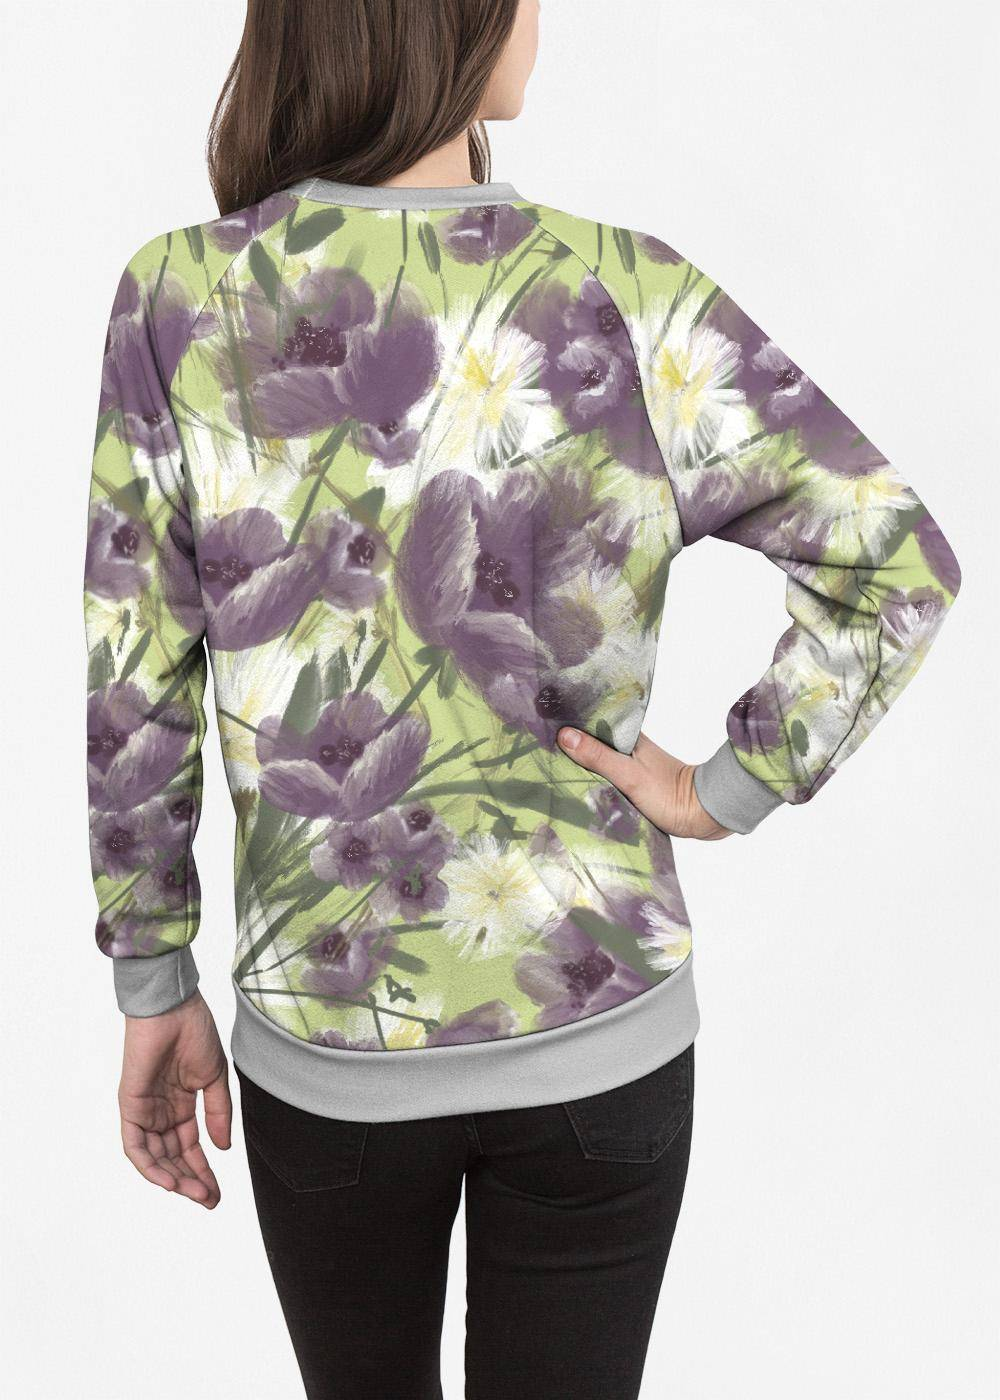 VIDA Women's Crewneck Sweatshirt - Mellow Garden Too by VIDA Original Artist  - Size: Large